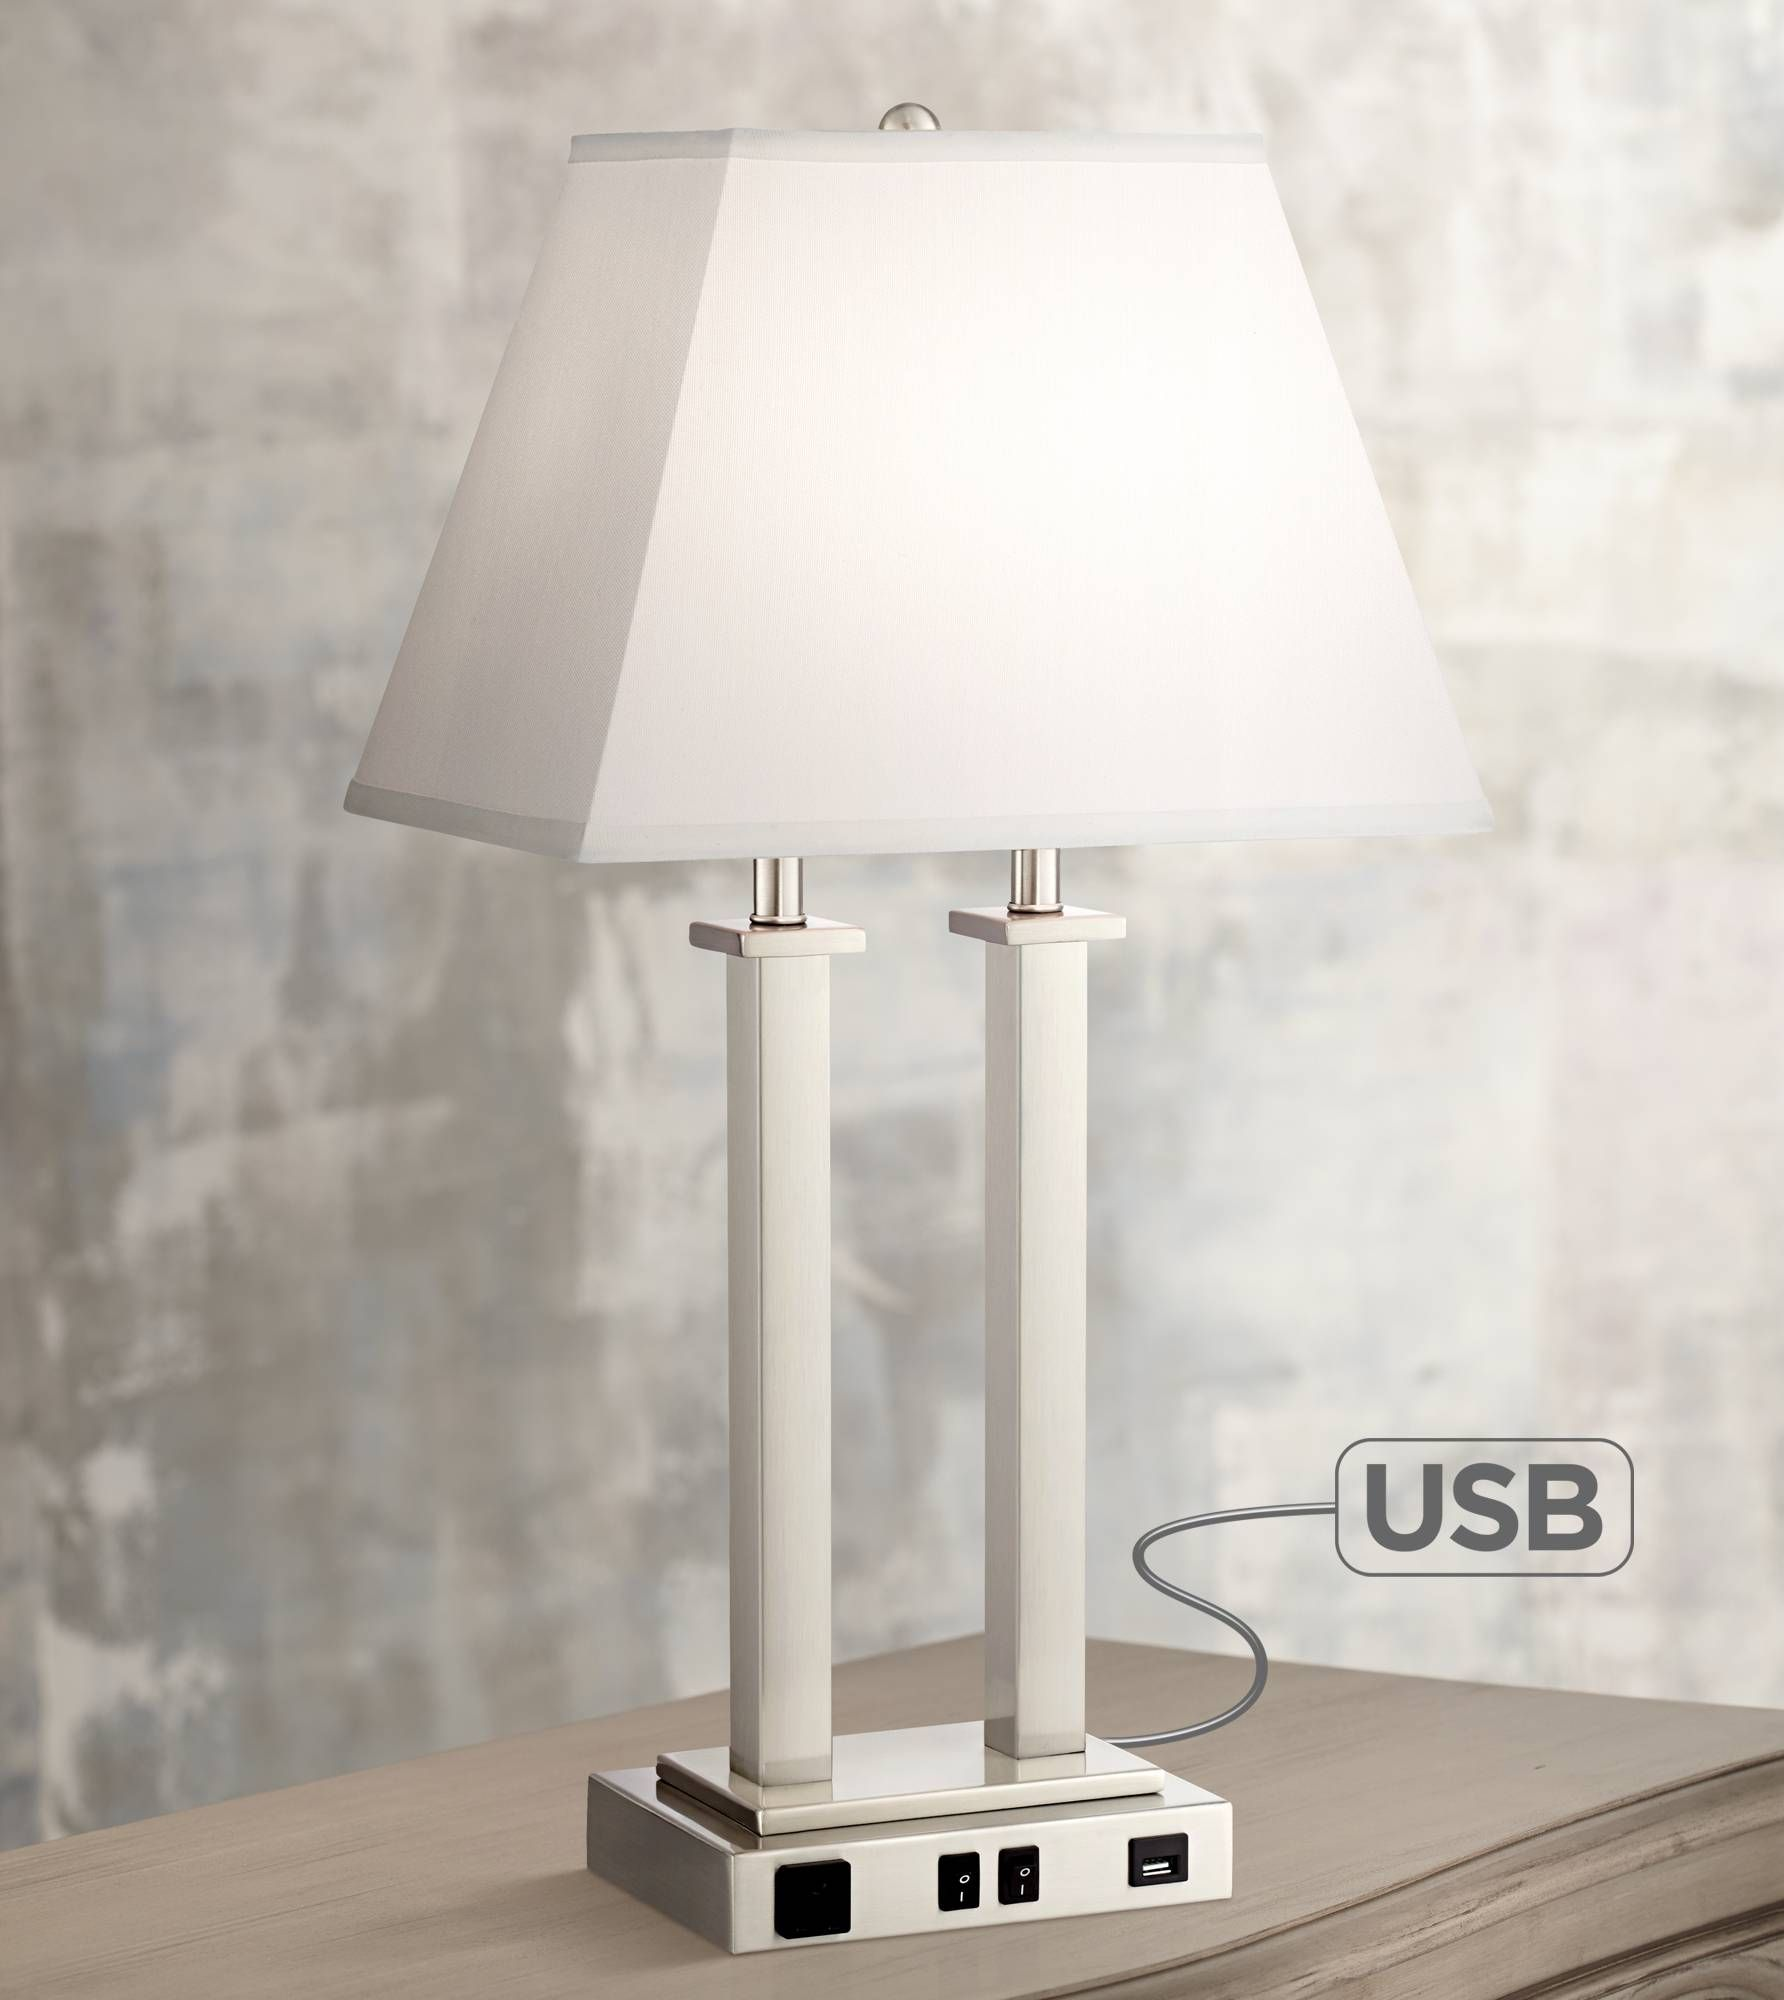 Possini Euro Amity Desk Lamp With Usb Port And Outlet 9g408